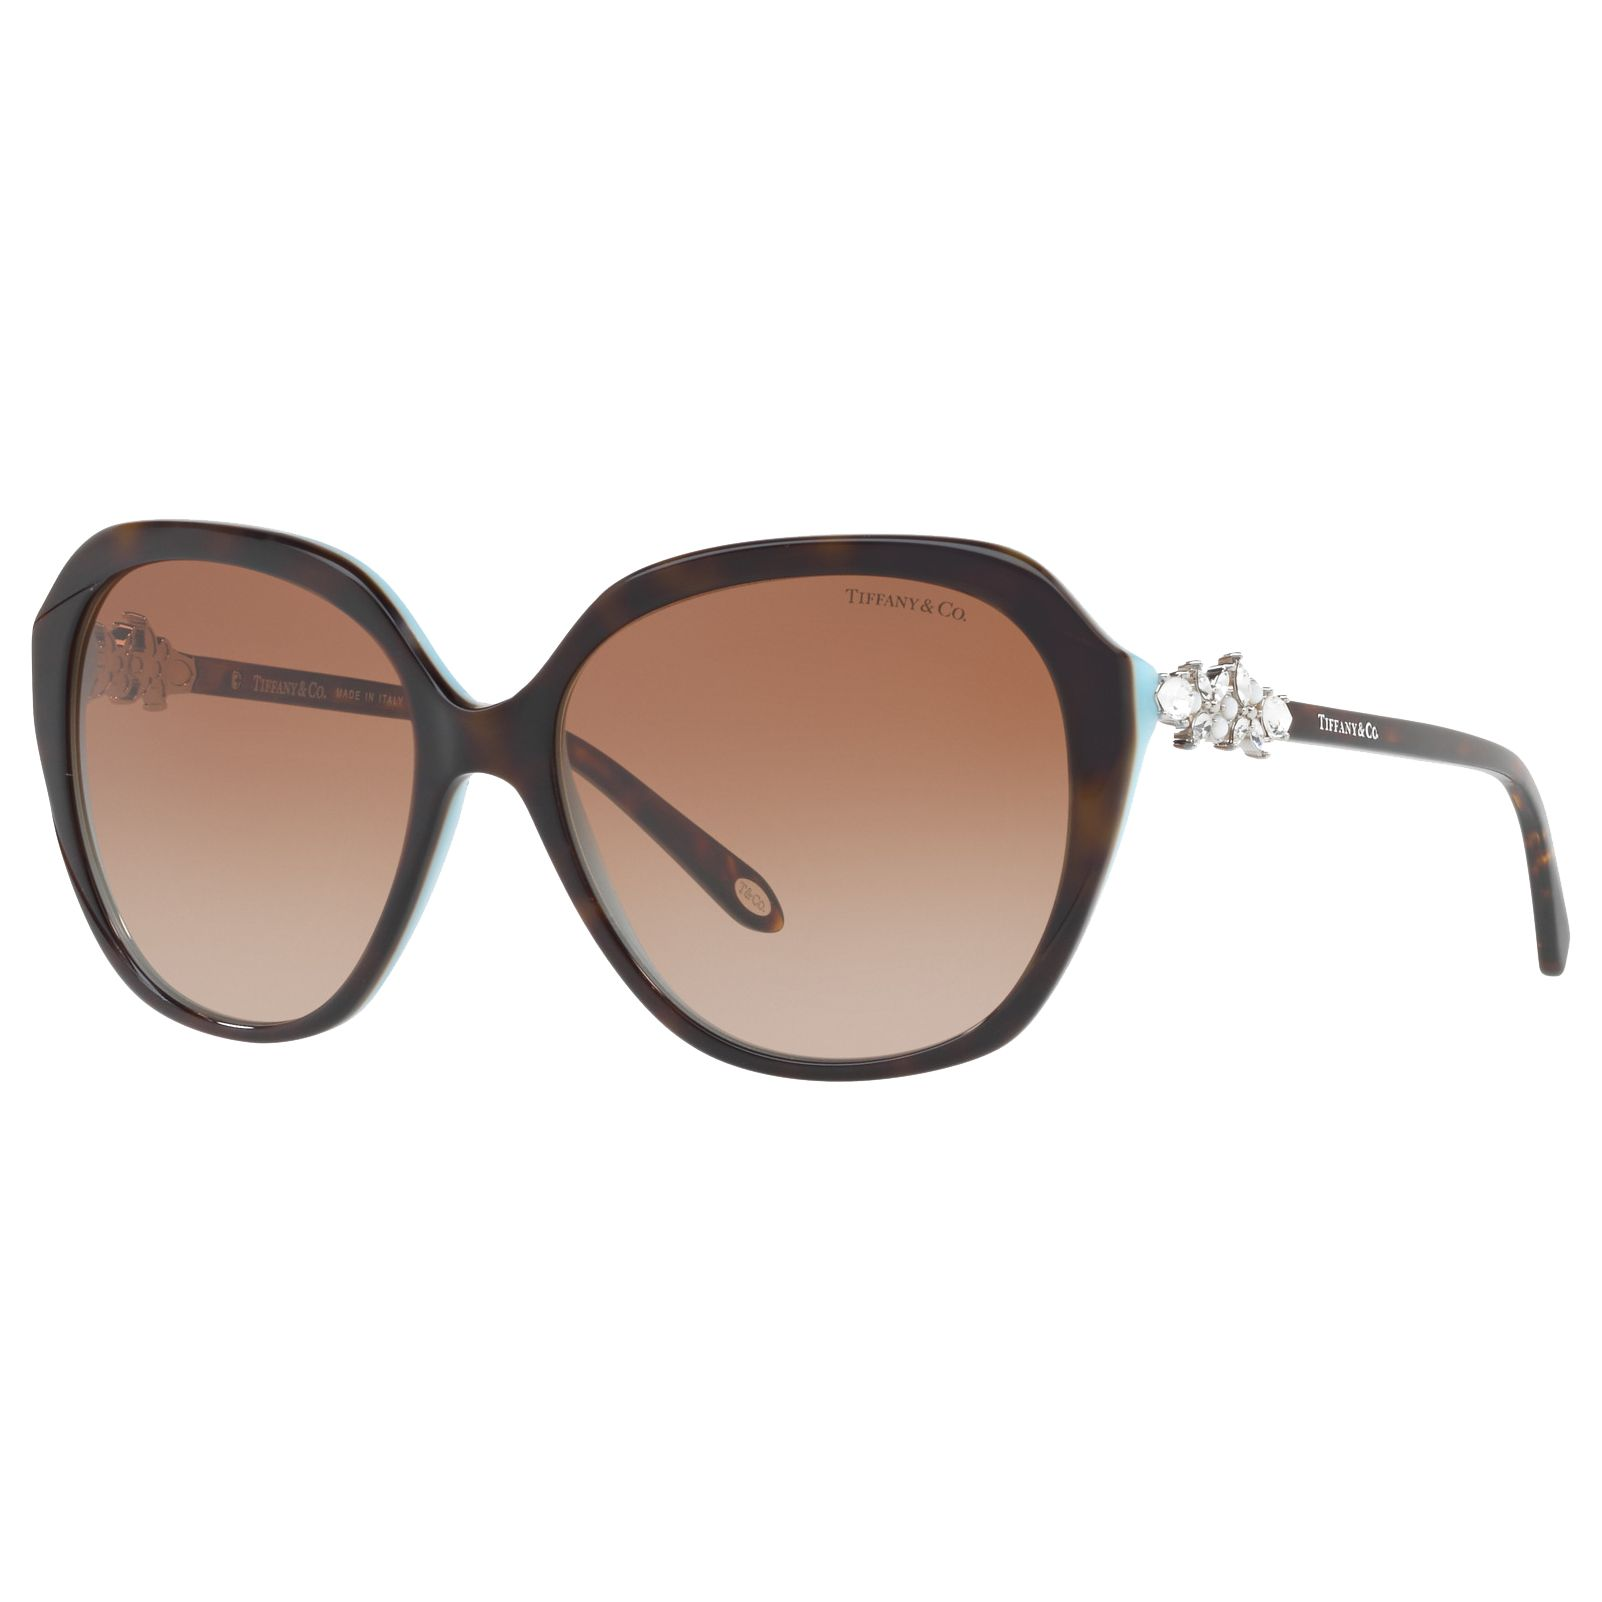 Tiffany & Co Tiffany & Co TF4132HB Embellished Square Sunglasses, Tortoise/Brown Gradient